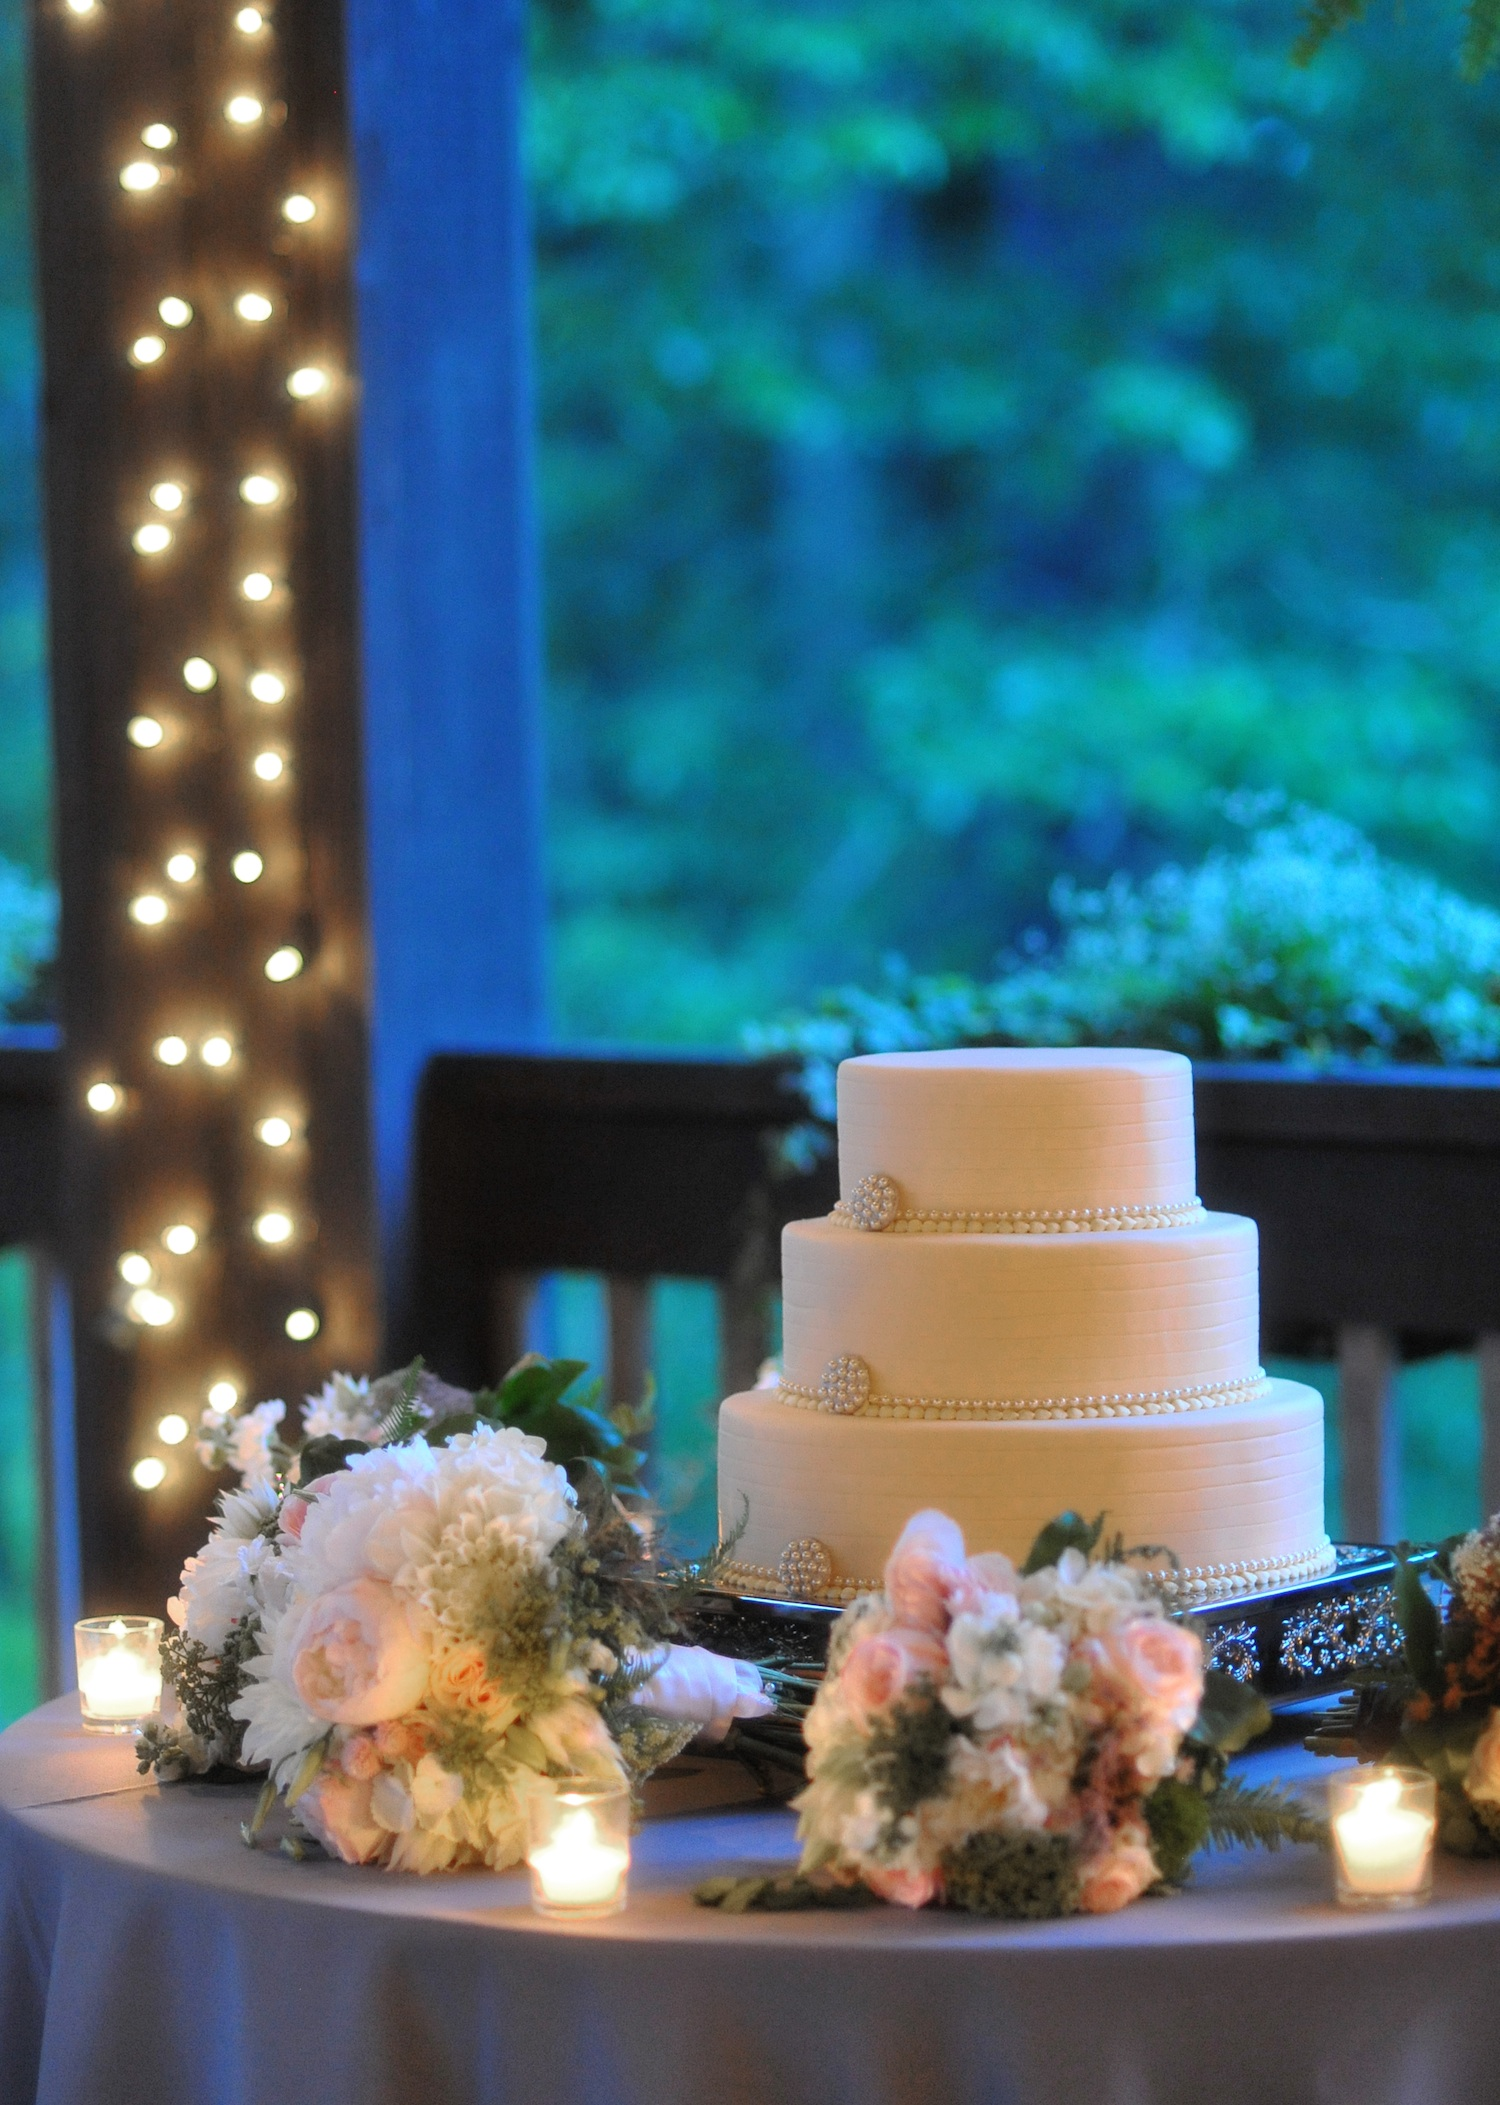 Classic-wedding-cake-north-carolina-venue.original